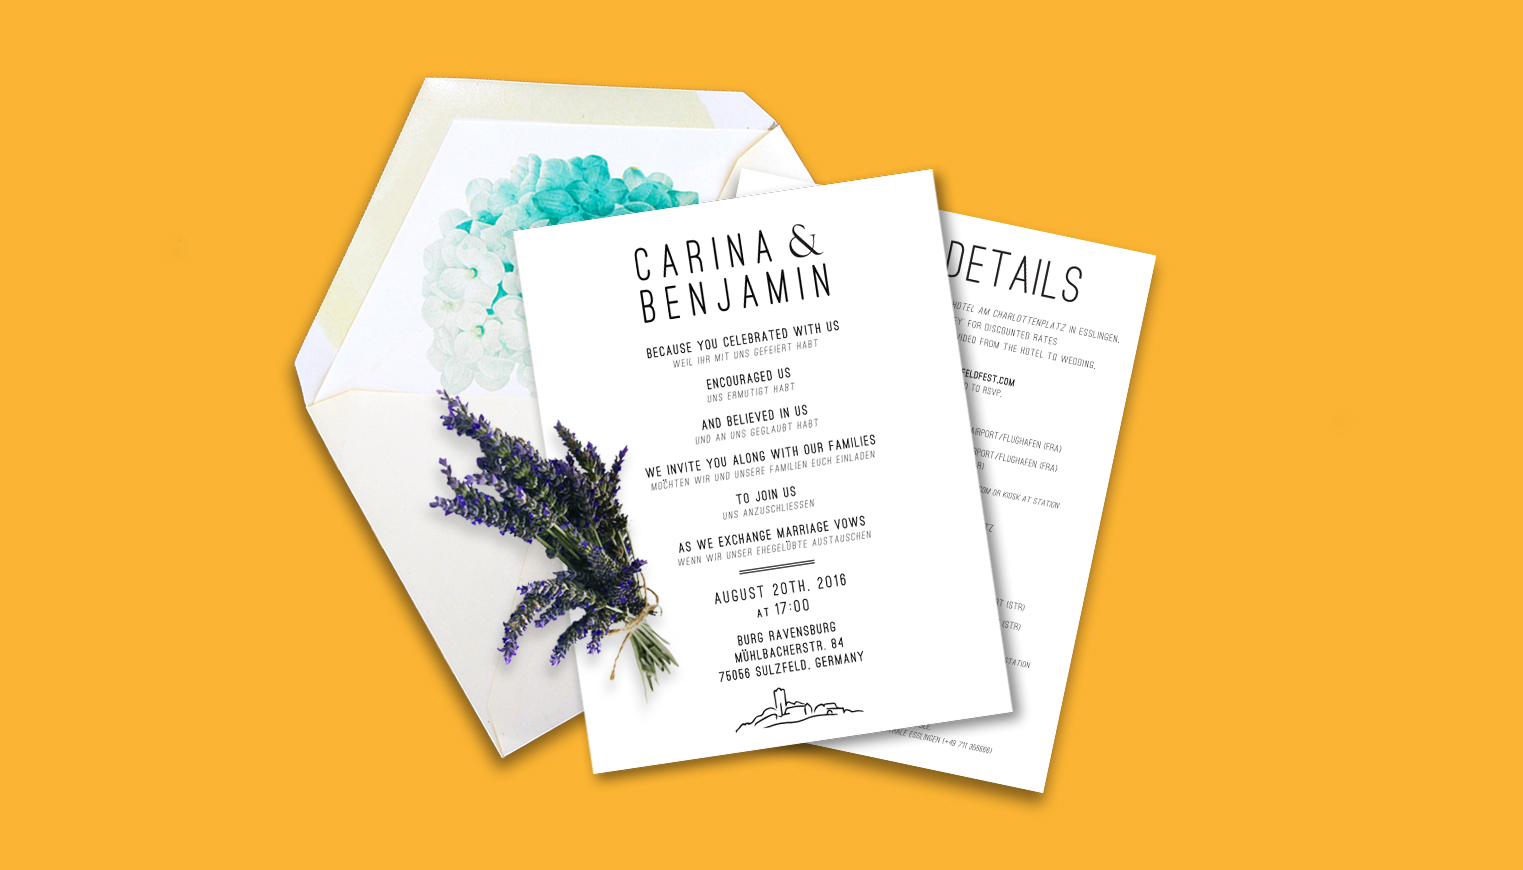 berlin-grey-creative-graphic-design-web-design-st-pete-fl-mockup-wedding-invitation